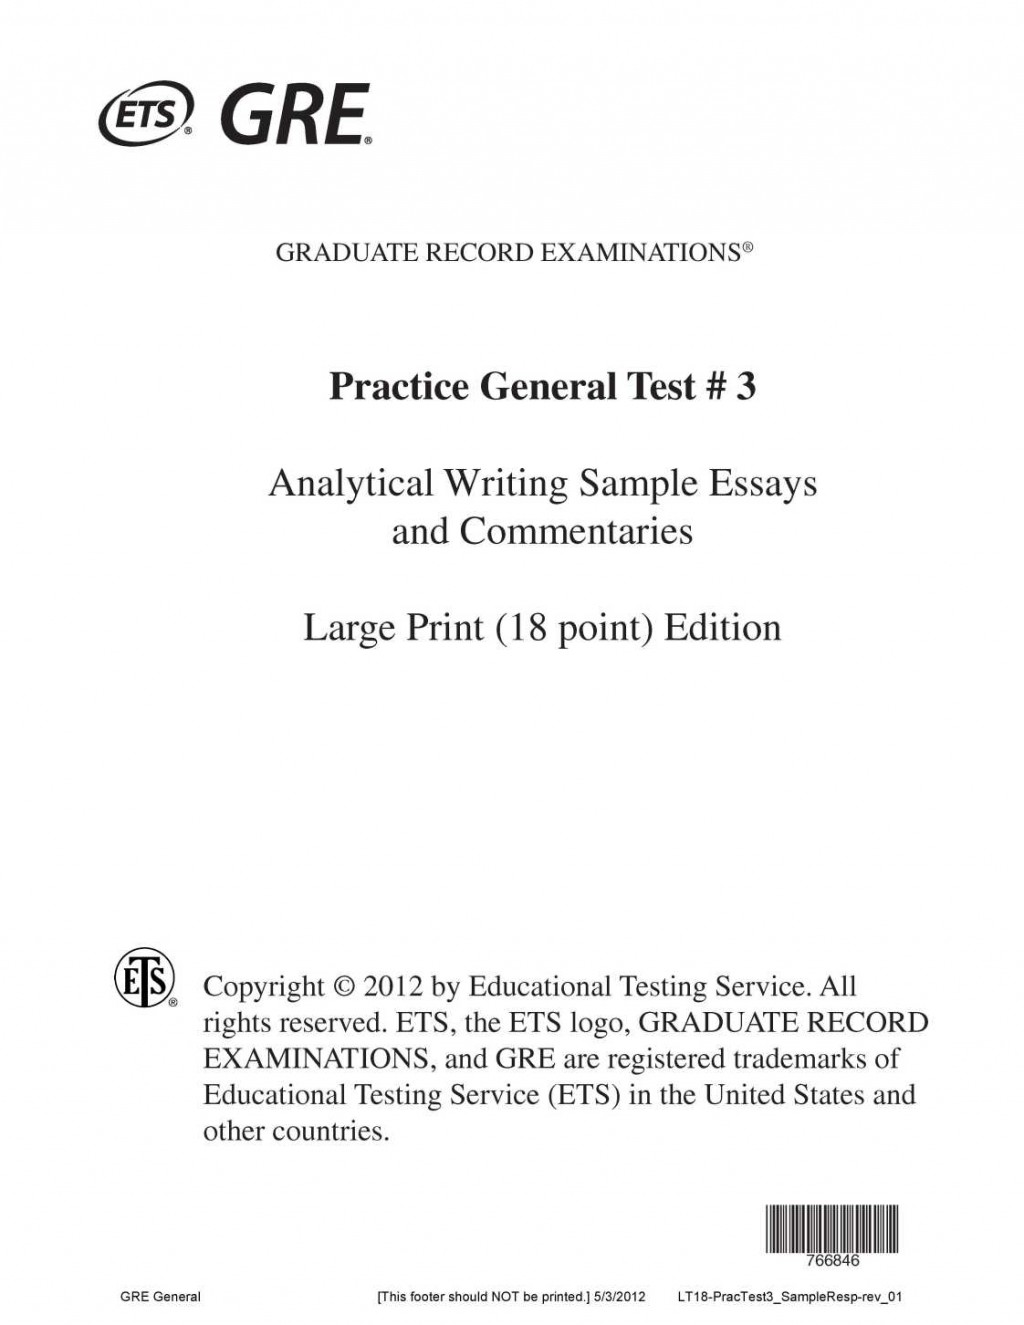 010 Gre Issue Essay Examples Example Prompts Research Paper Writing Service Jdpapermulx Essays Haadyaooverbayresortcom Sample L Pdf Analytical Chart Stirring To Use Argument Samples Large